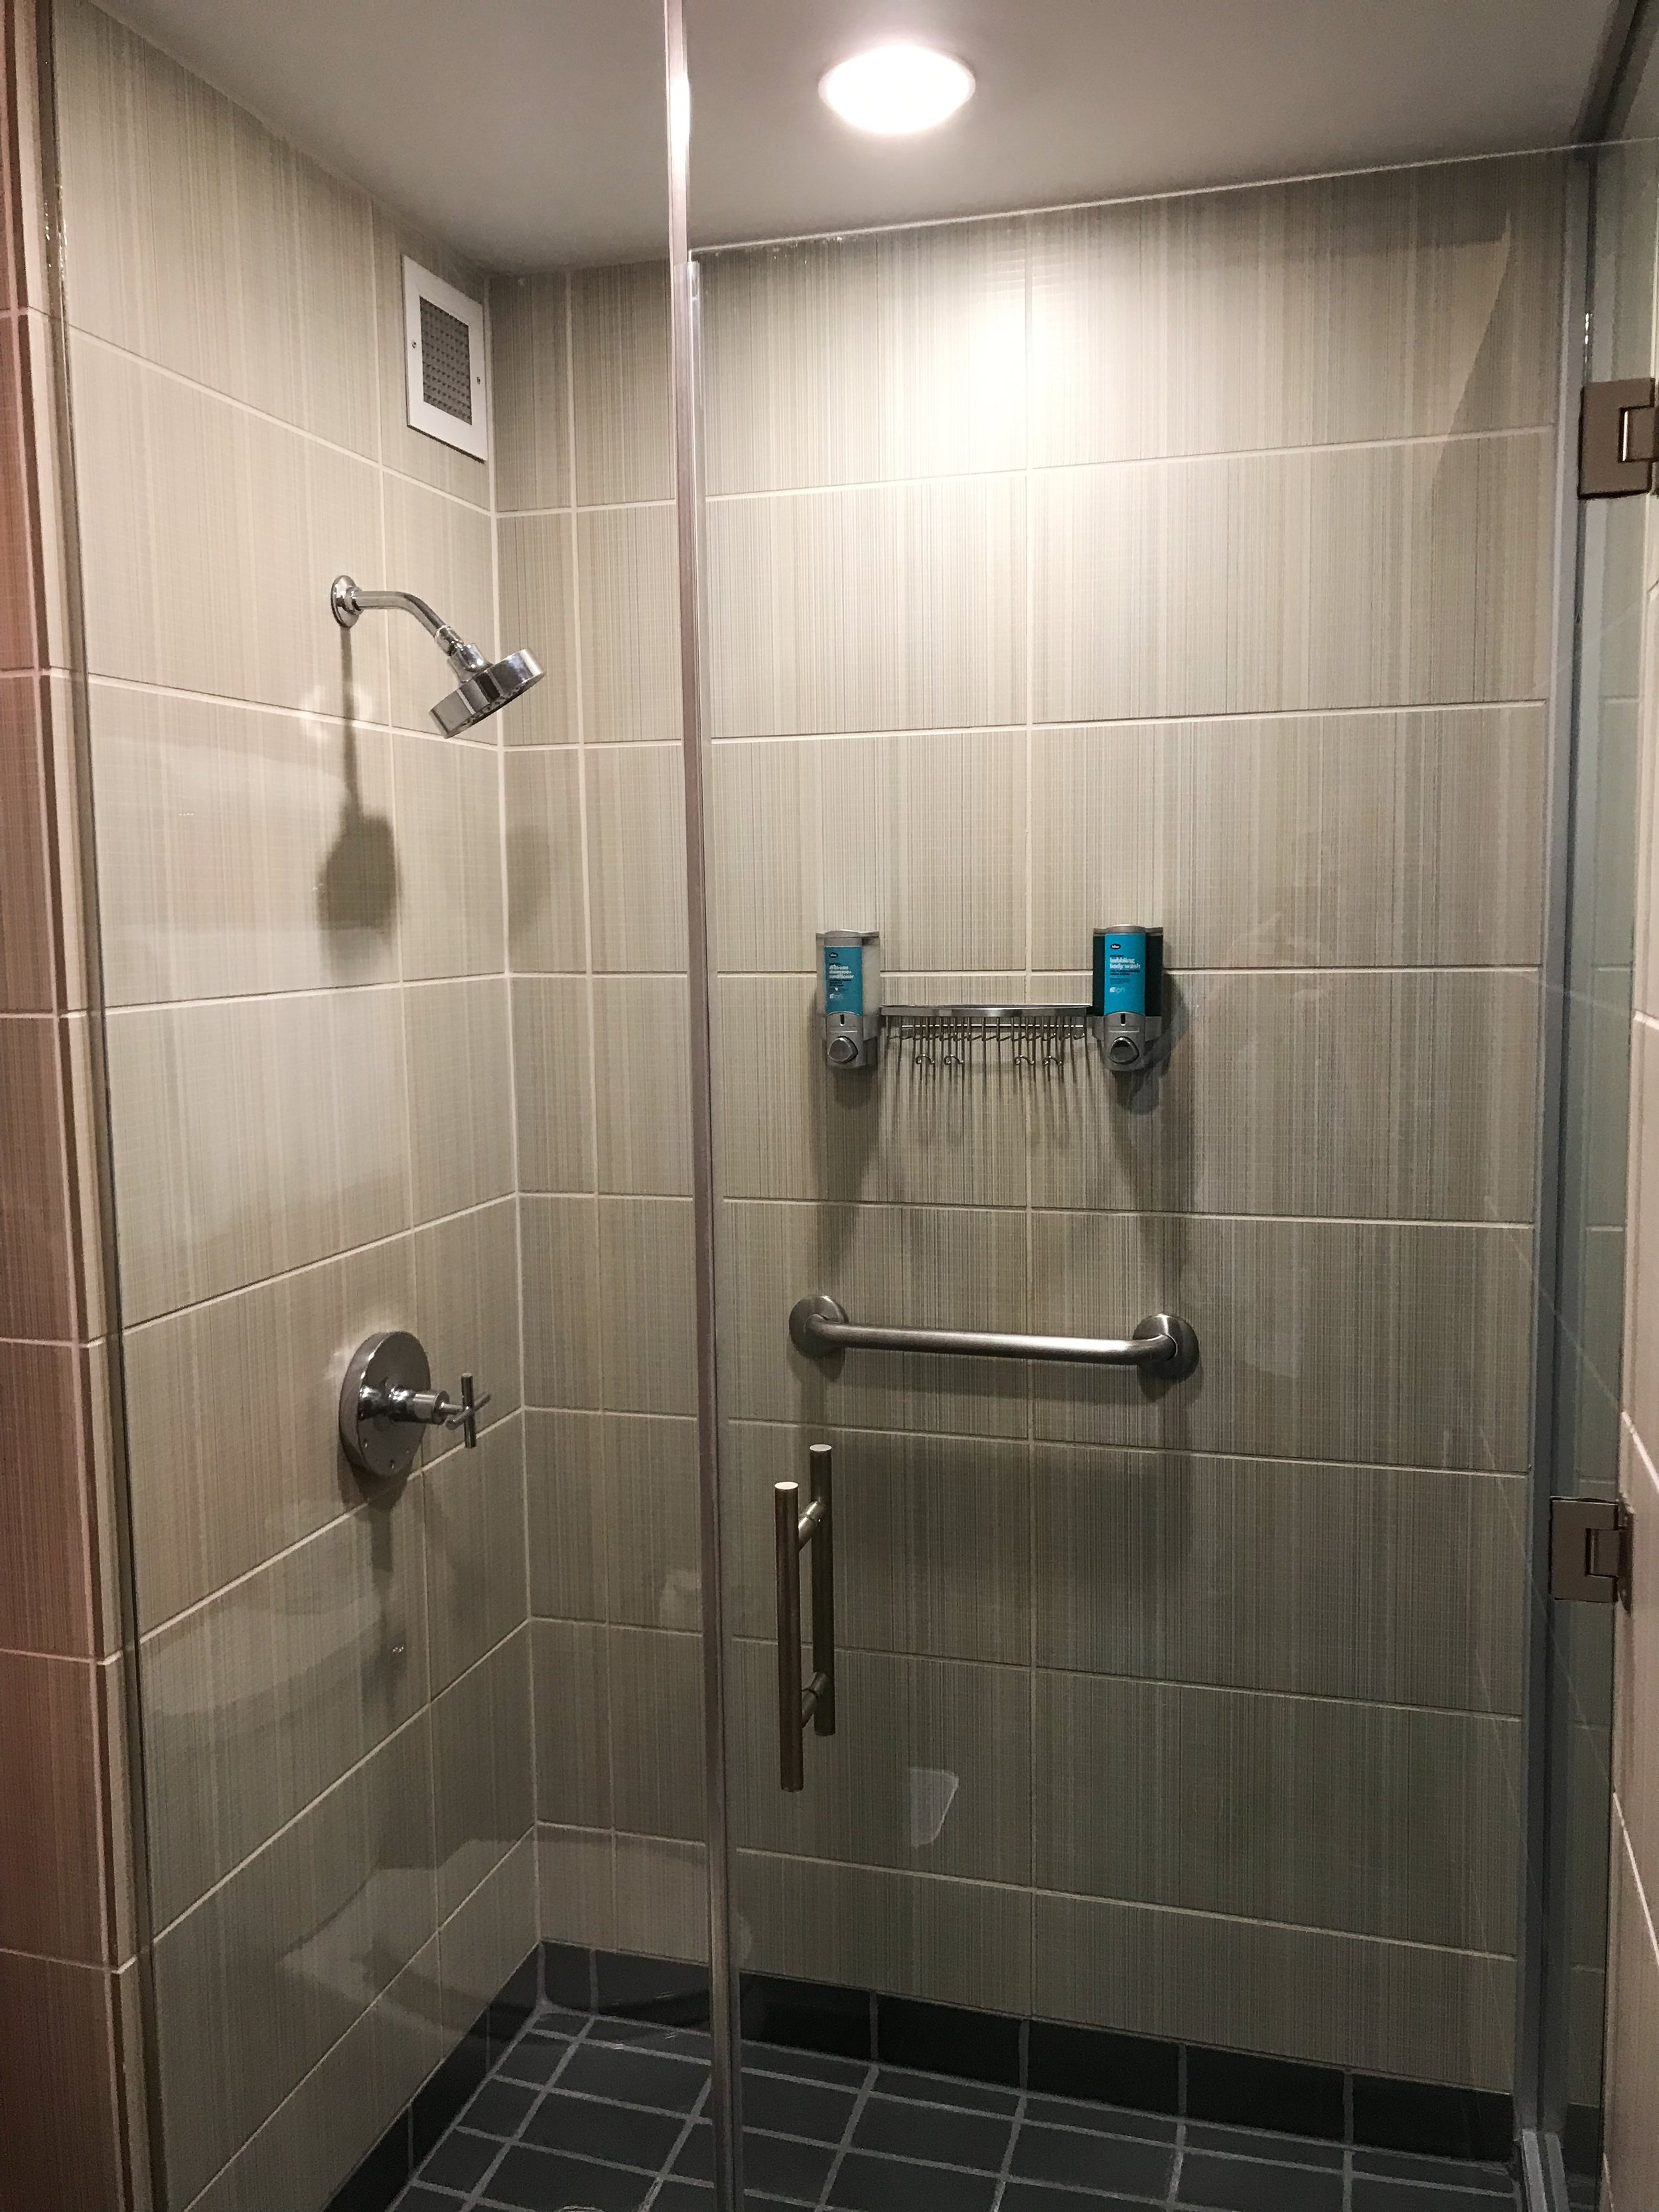 There was a large walk-in shower.